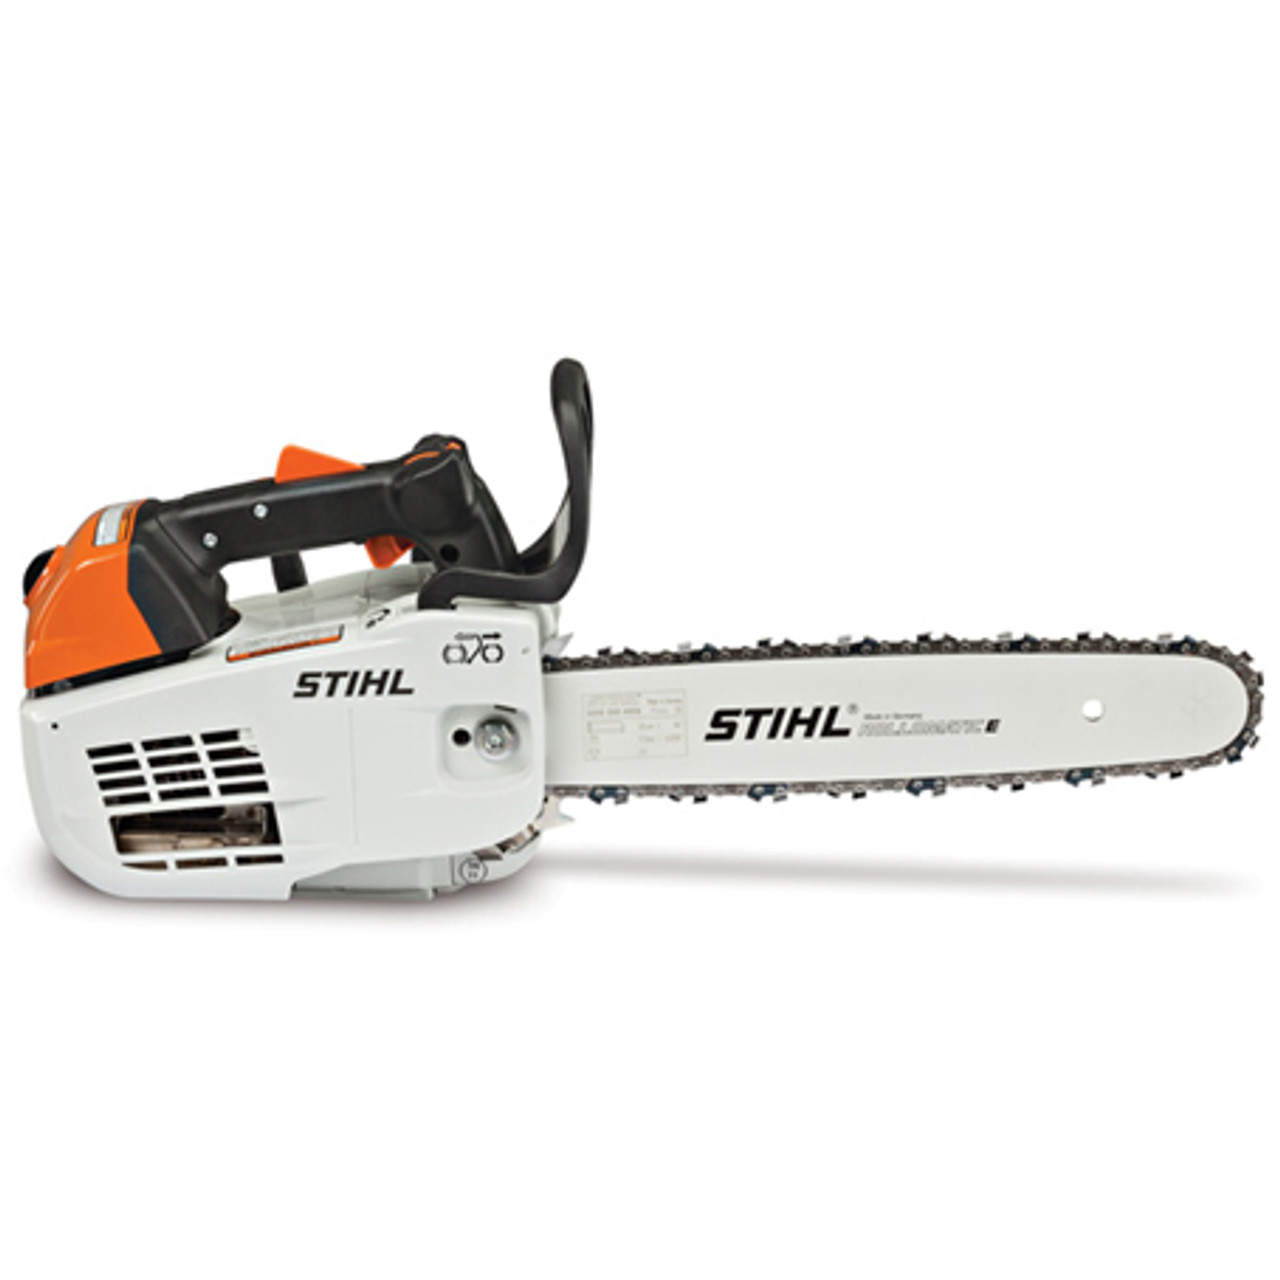 "STIHL MS 201 T C-M 14 35.2cc In-Tree Professional Arborist Top Handle Chainsaw w/ 14"" Bar Image"